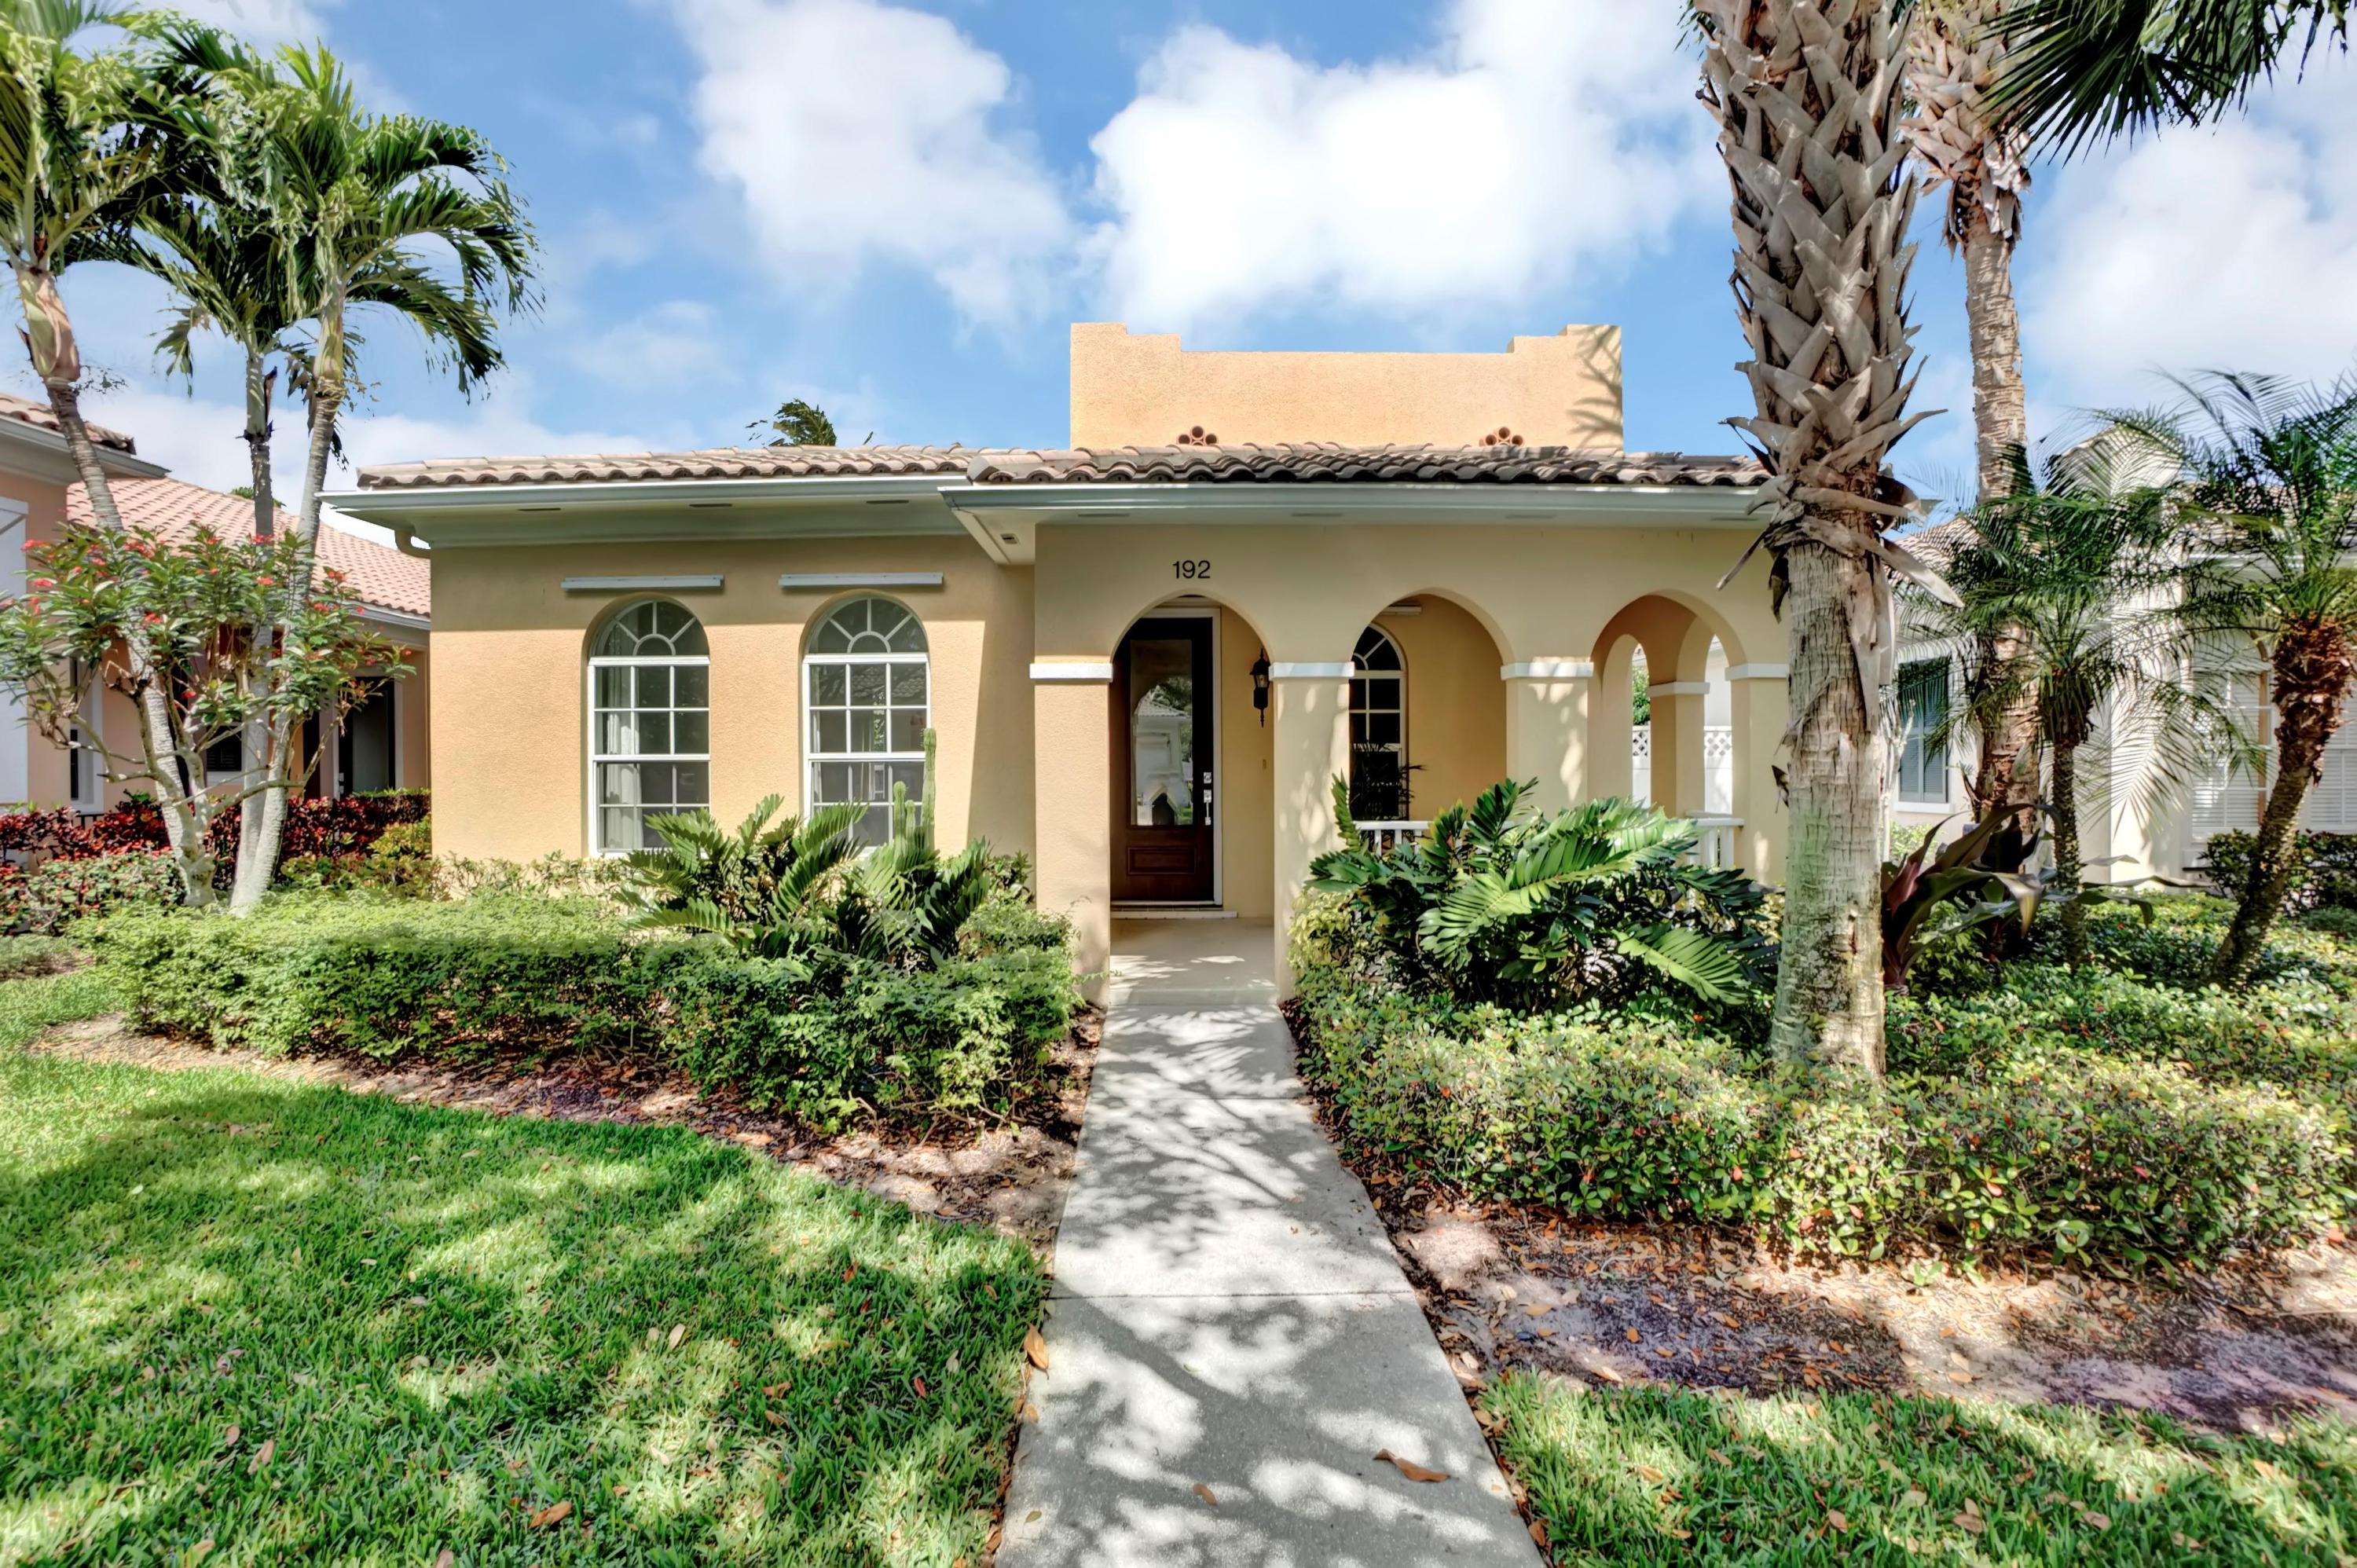 New Home for sale at 192 San Remo Drive in Jupiter